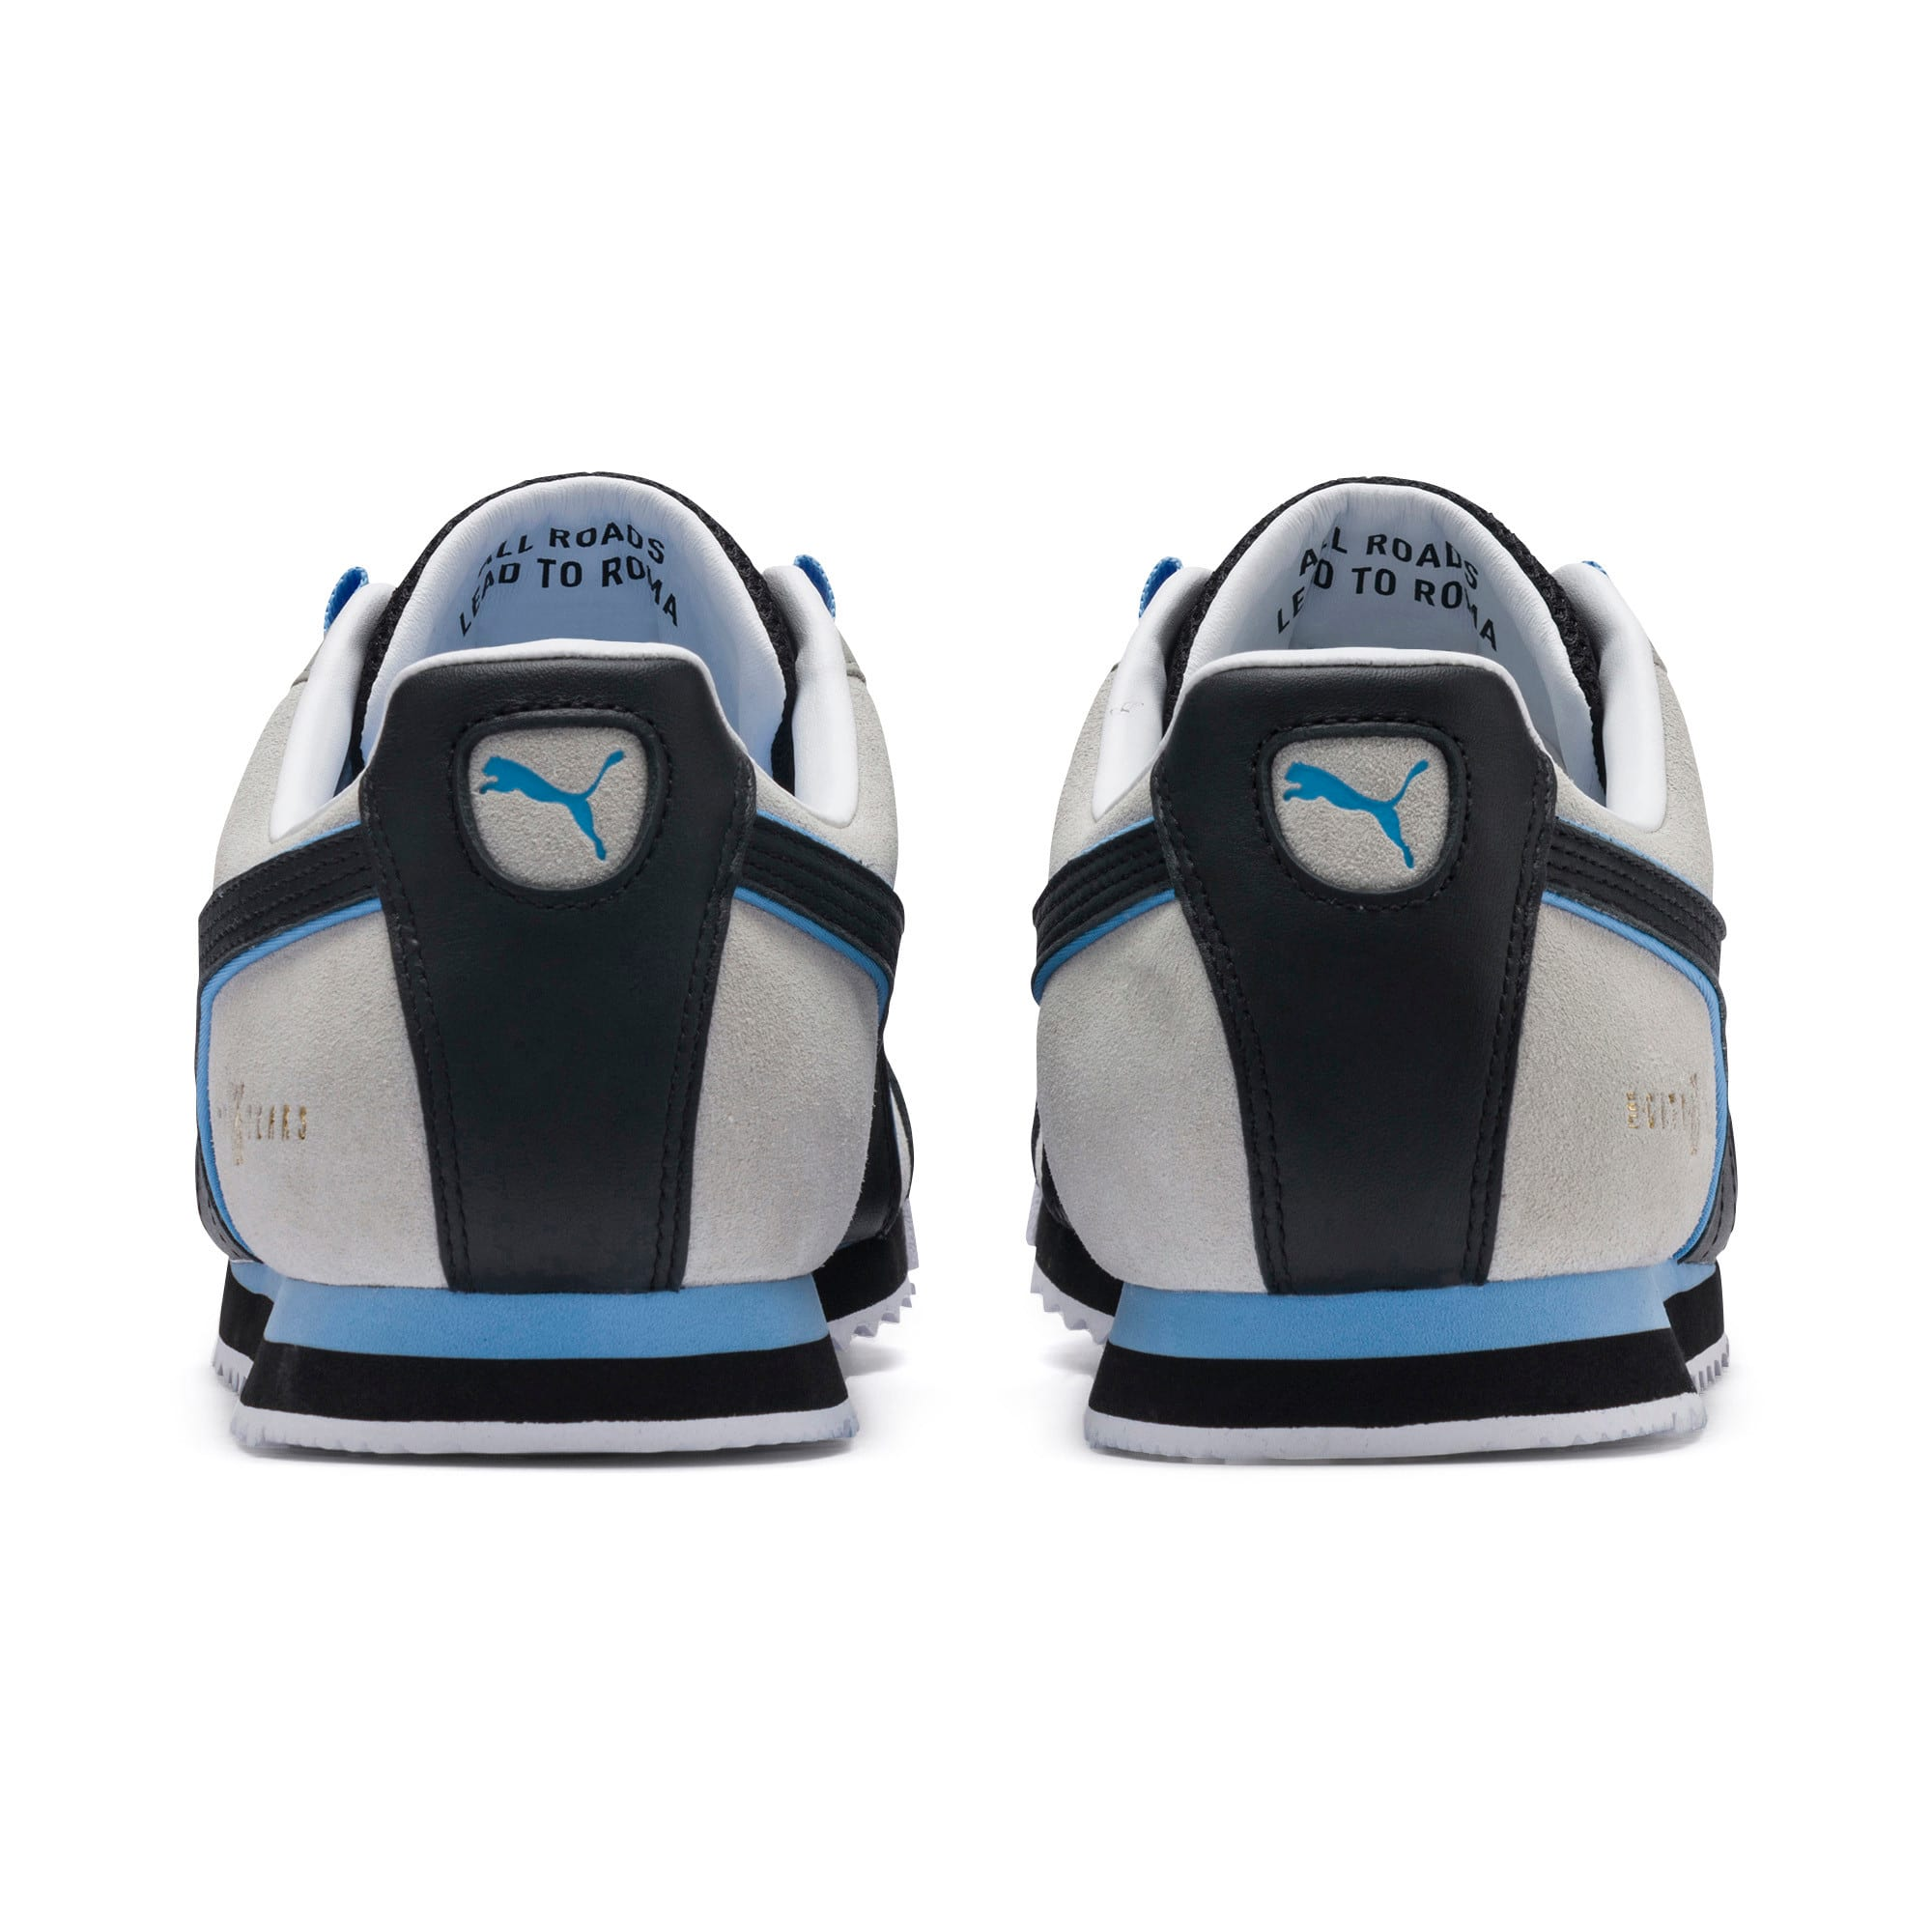 Thumbnail 3 of Roma x Manchester City sportschoenen, Gray Violet-Team Light Blue, medium